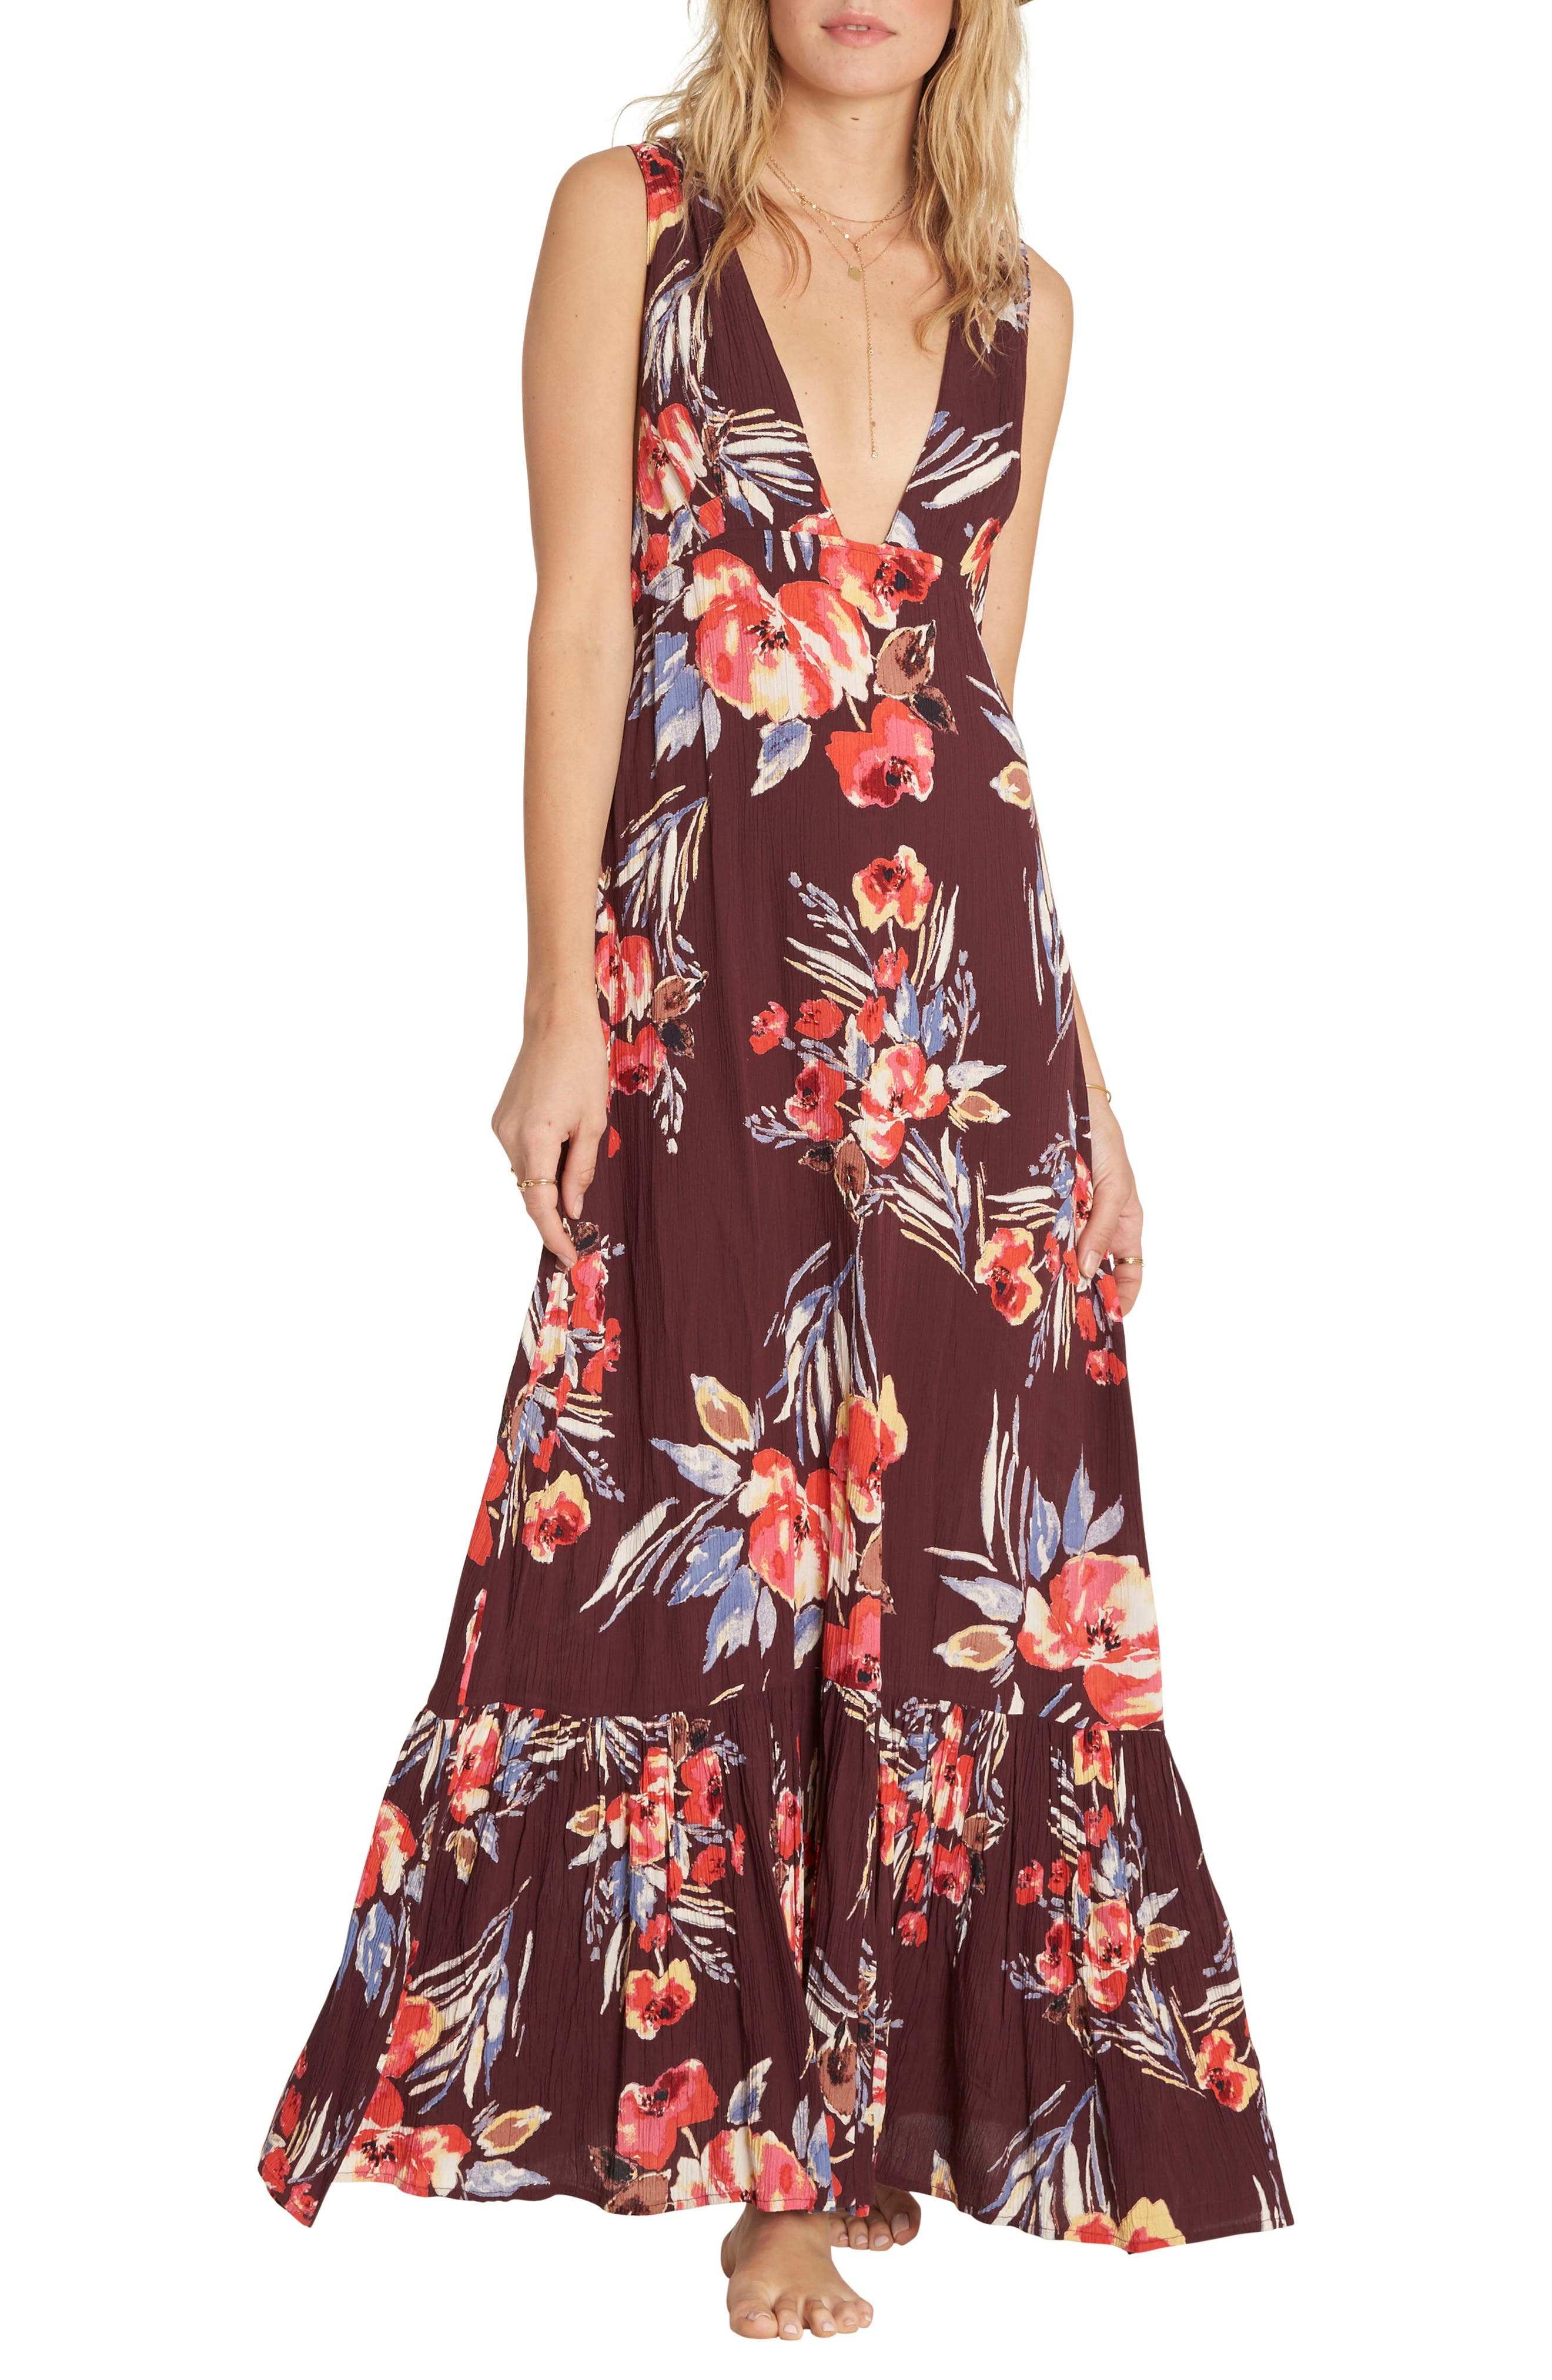 Awoke for Waves Floral Print Maxi Dress,                         Main,                         color, 930